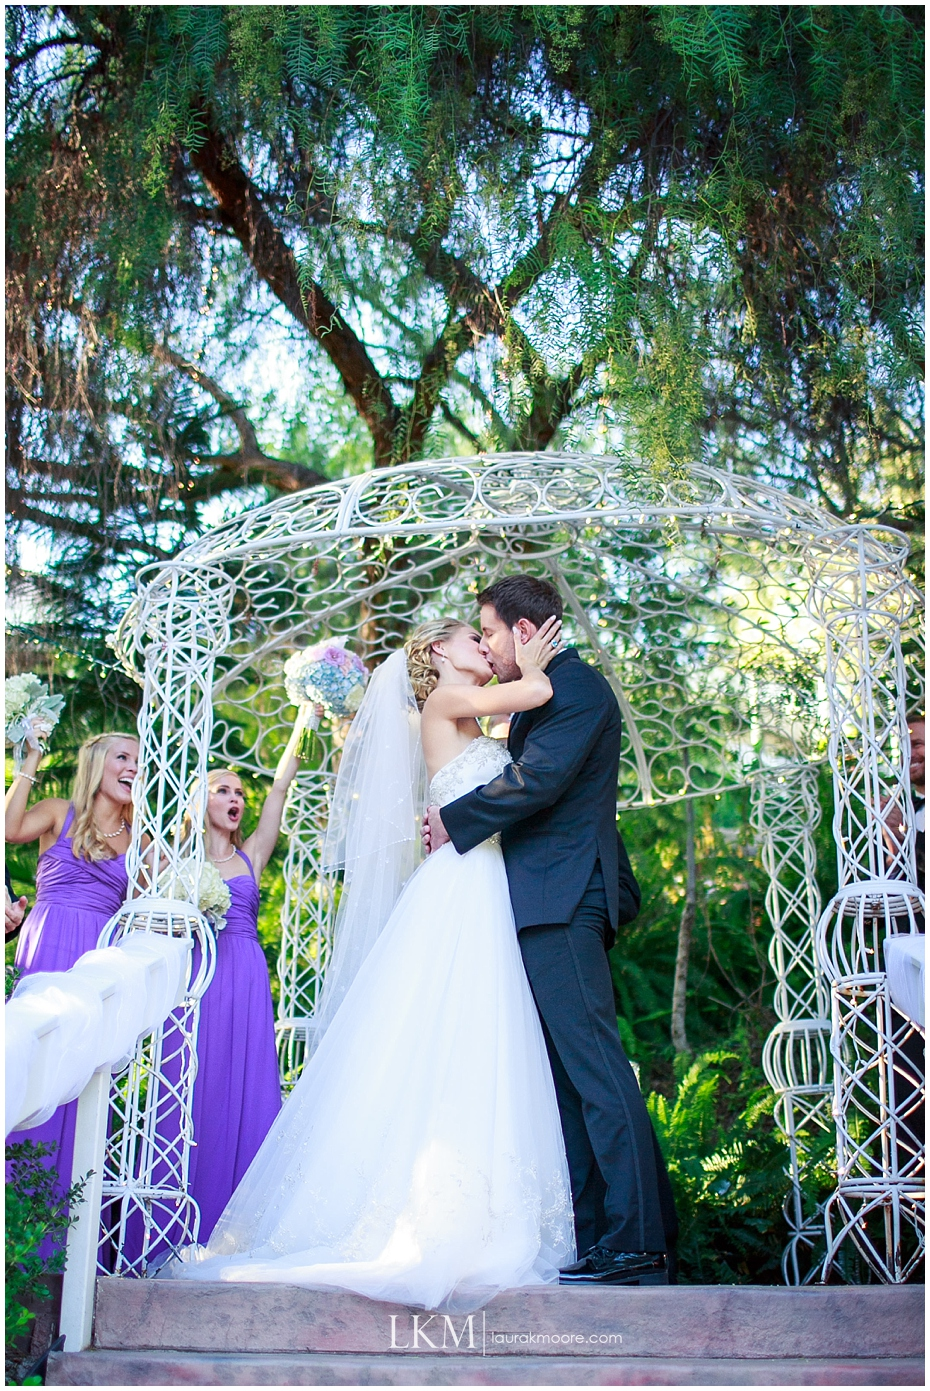 Kristen-Dalton-Celebrity-Wedding-Photography-The-Vineyards-Simi-Valley_0096.jpg